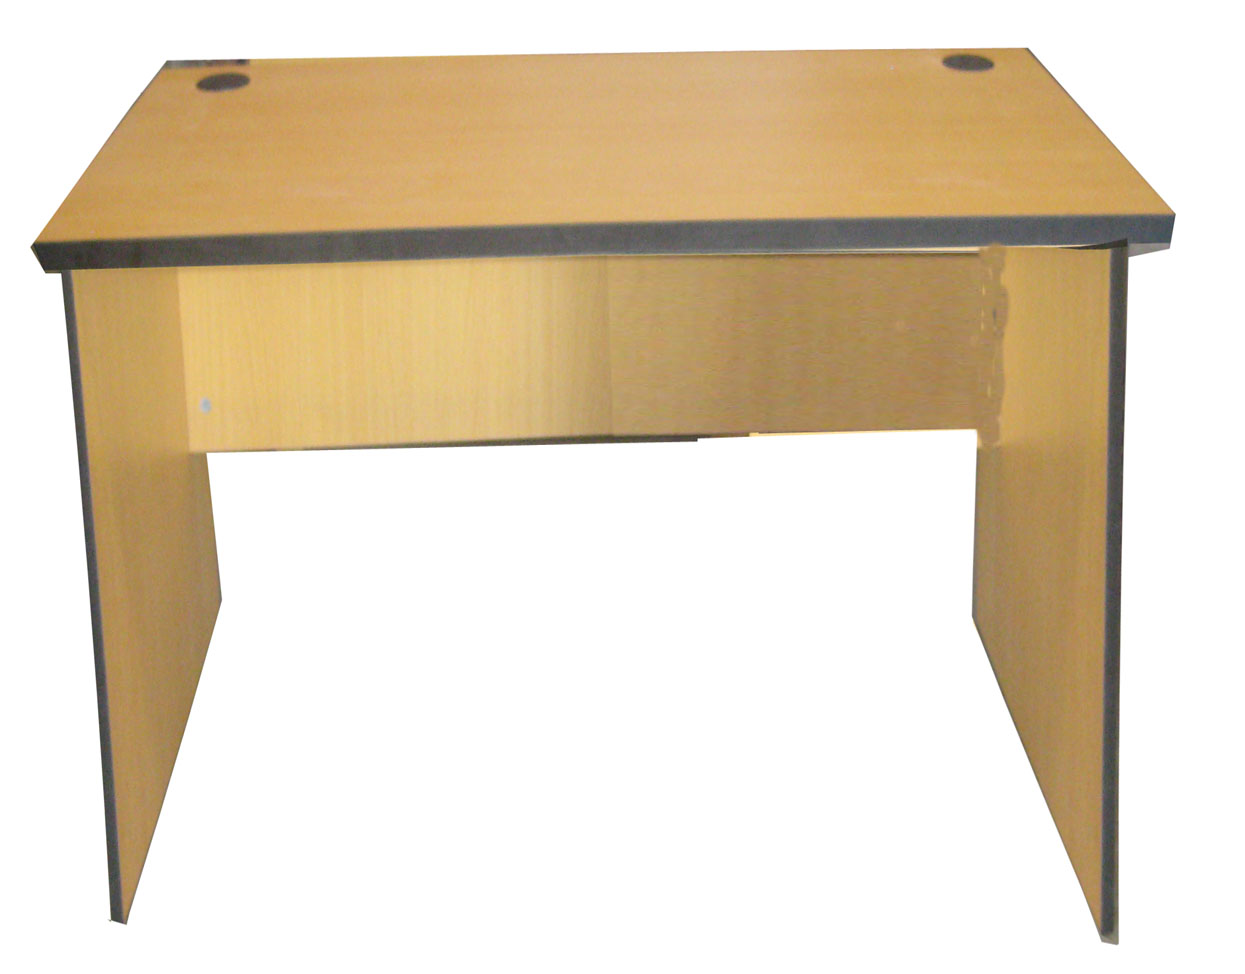 IRELAND Office Table w/out drawers, groumet, PVC edging